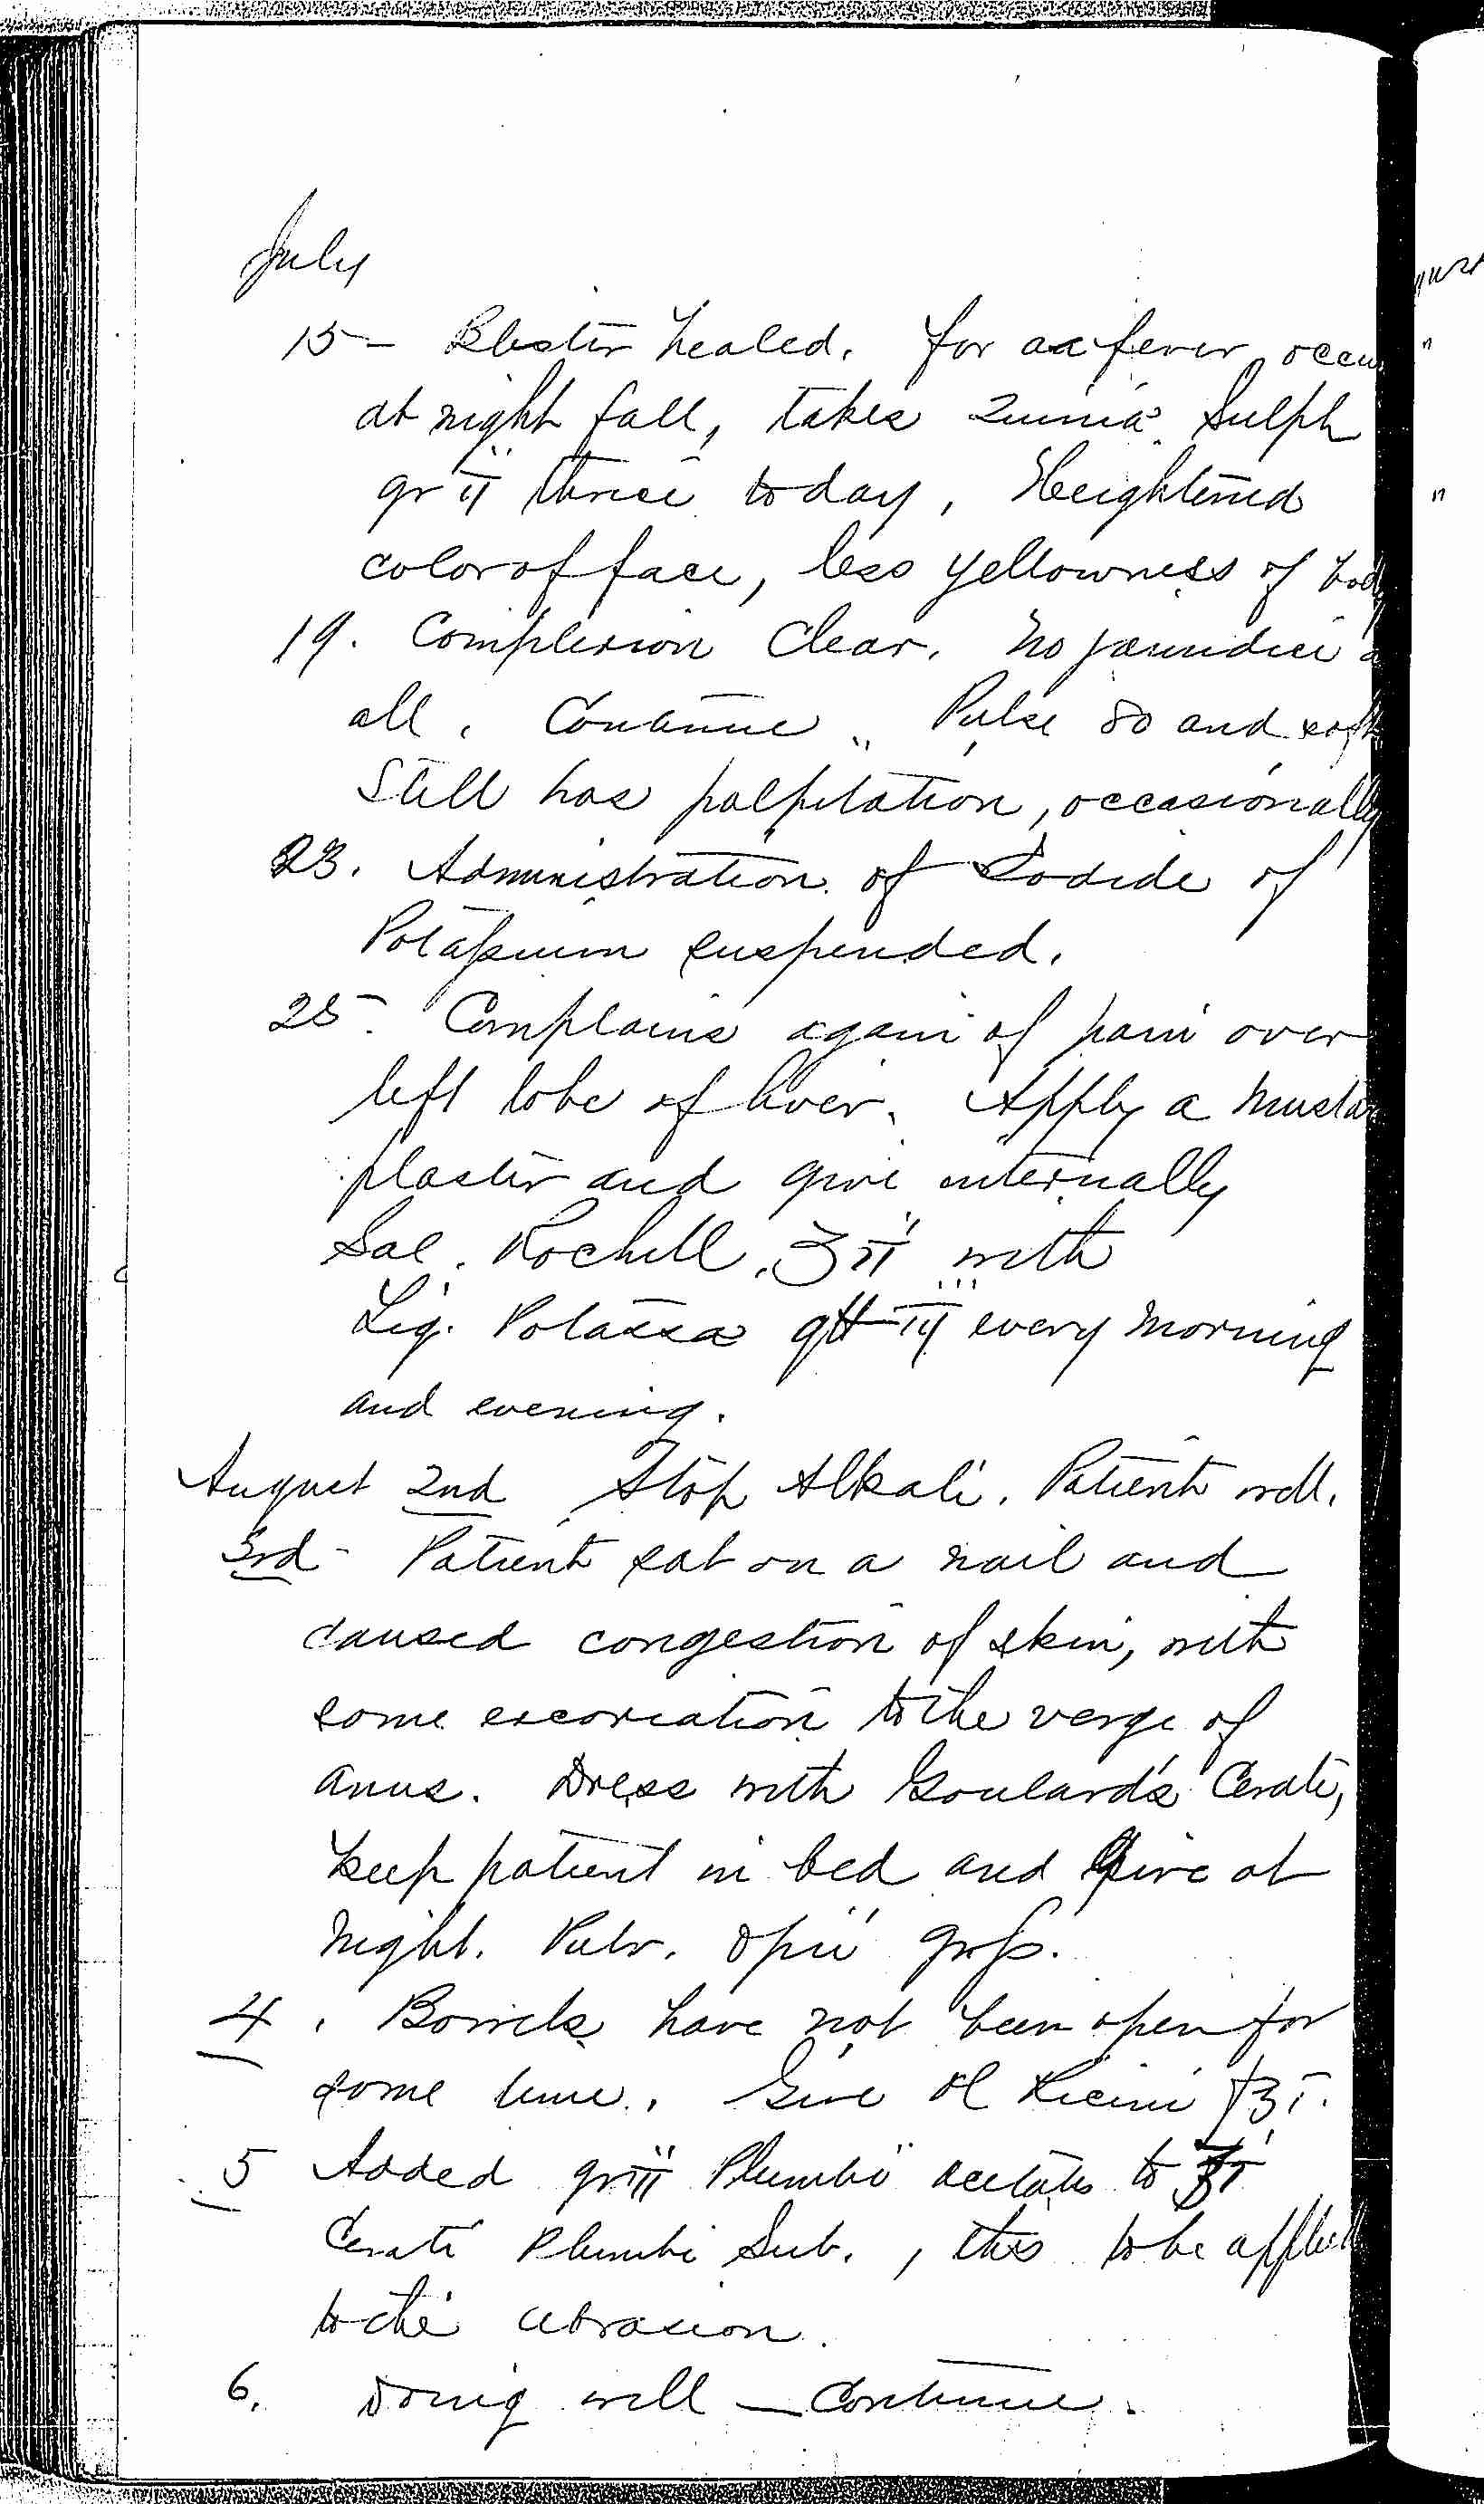 Entry for Richard Hearn (page 6 of 7) in the log Hospital Tickets and Case Papers - Naval Hospital - Washington, D.C. - 1868-69